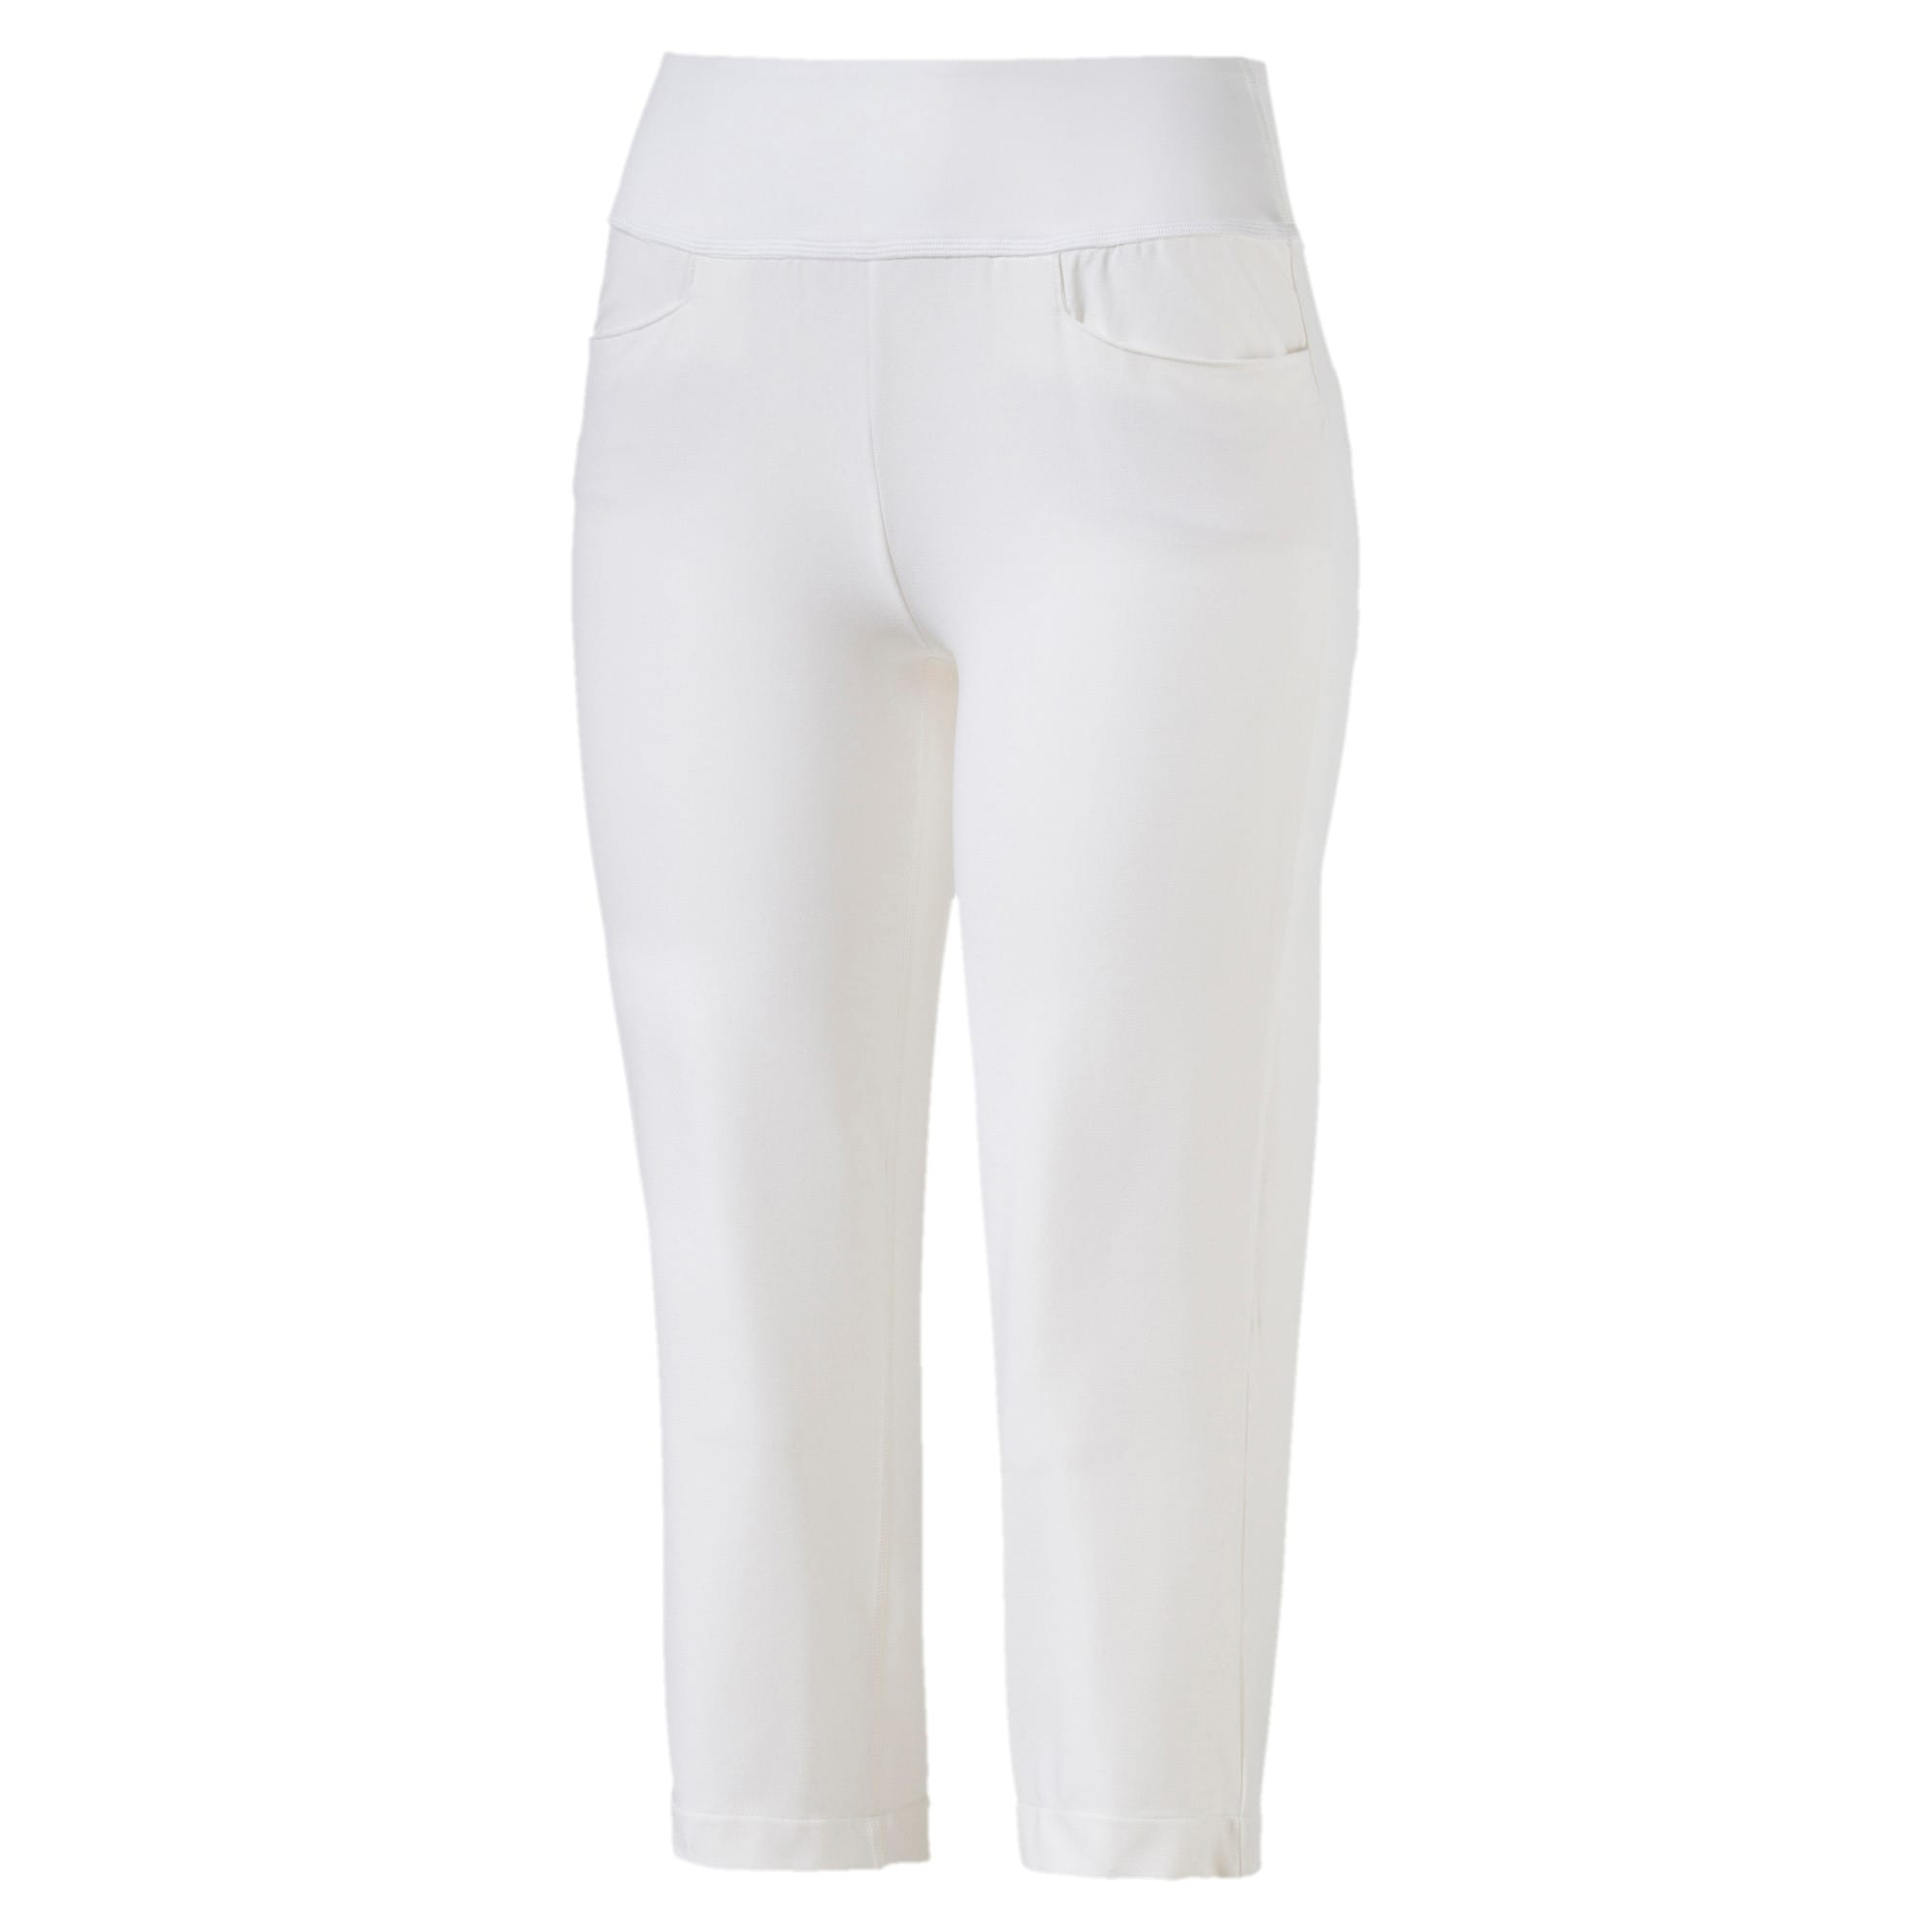 Thumbnail 1 of Golf Women's PWRSHAPE Capri Pants, Bright White, medium